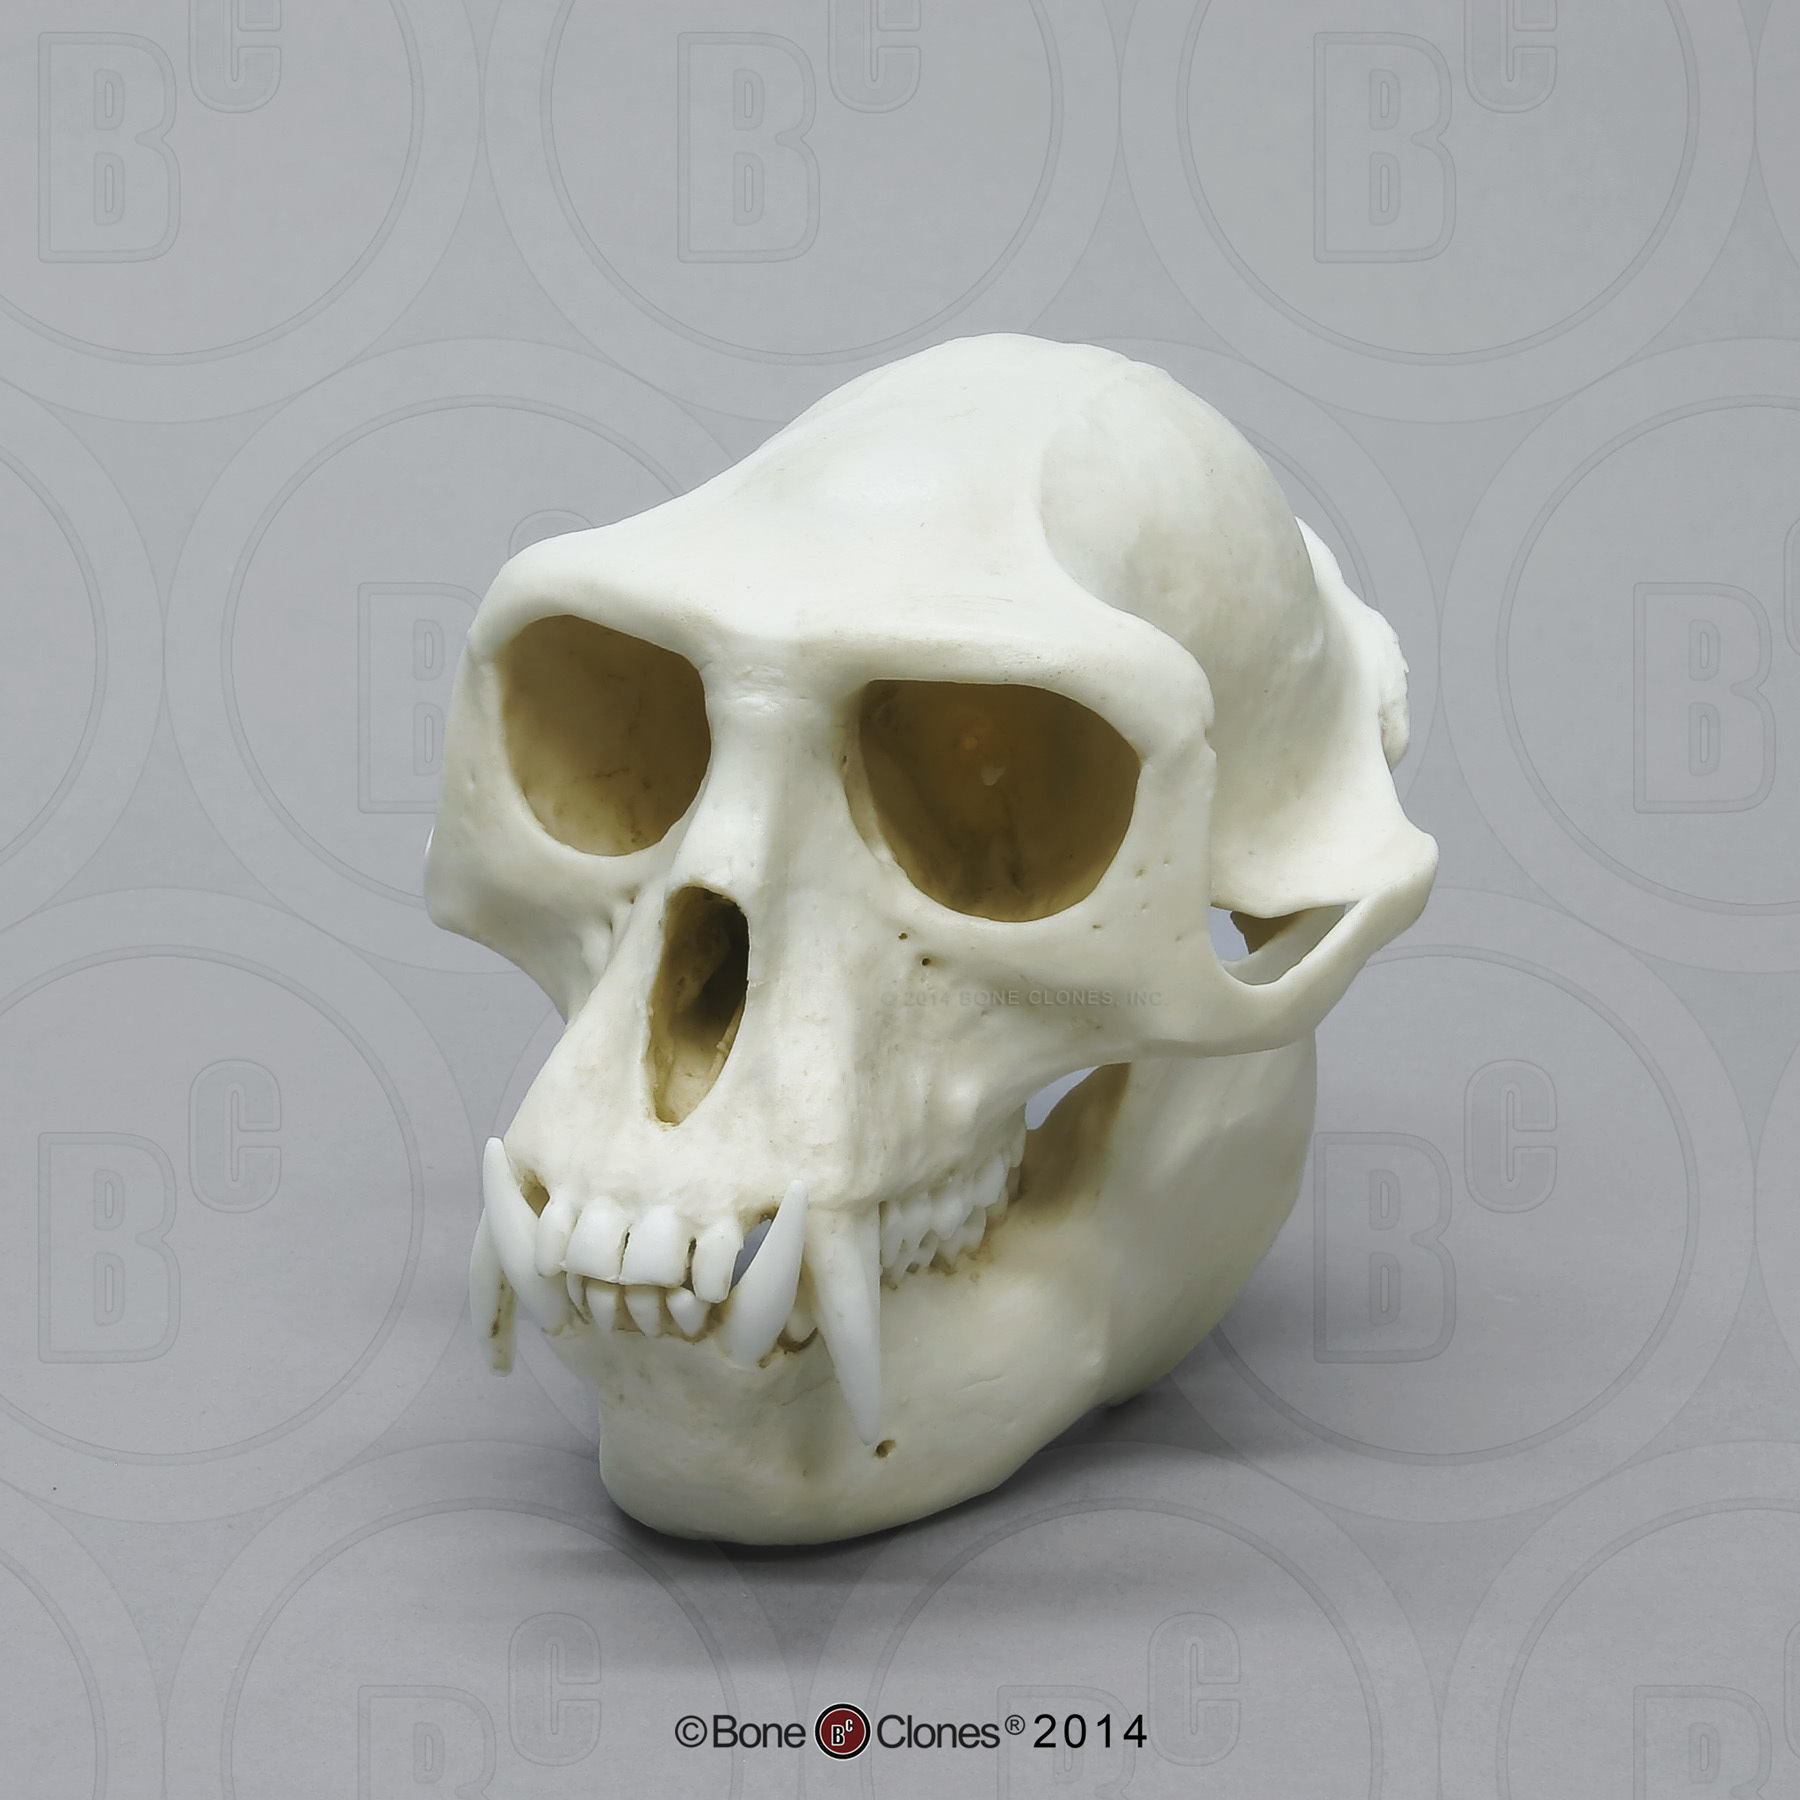 hight resolution of hanuman langur skull